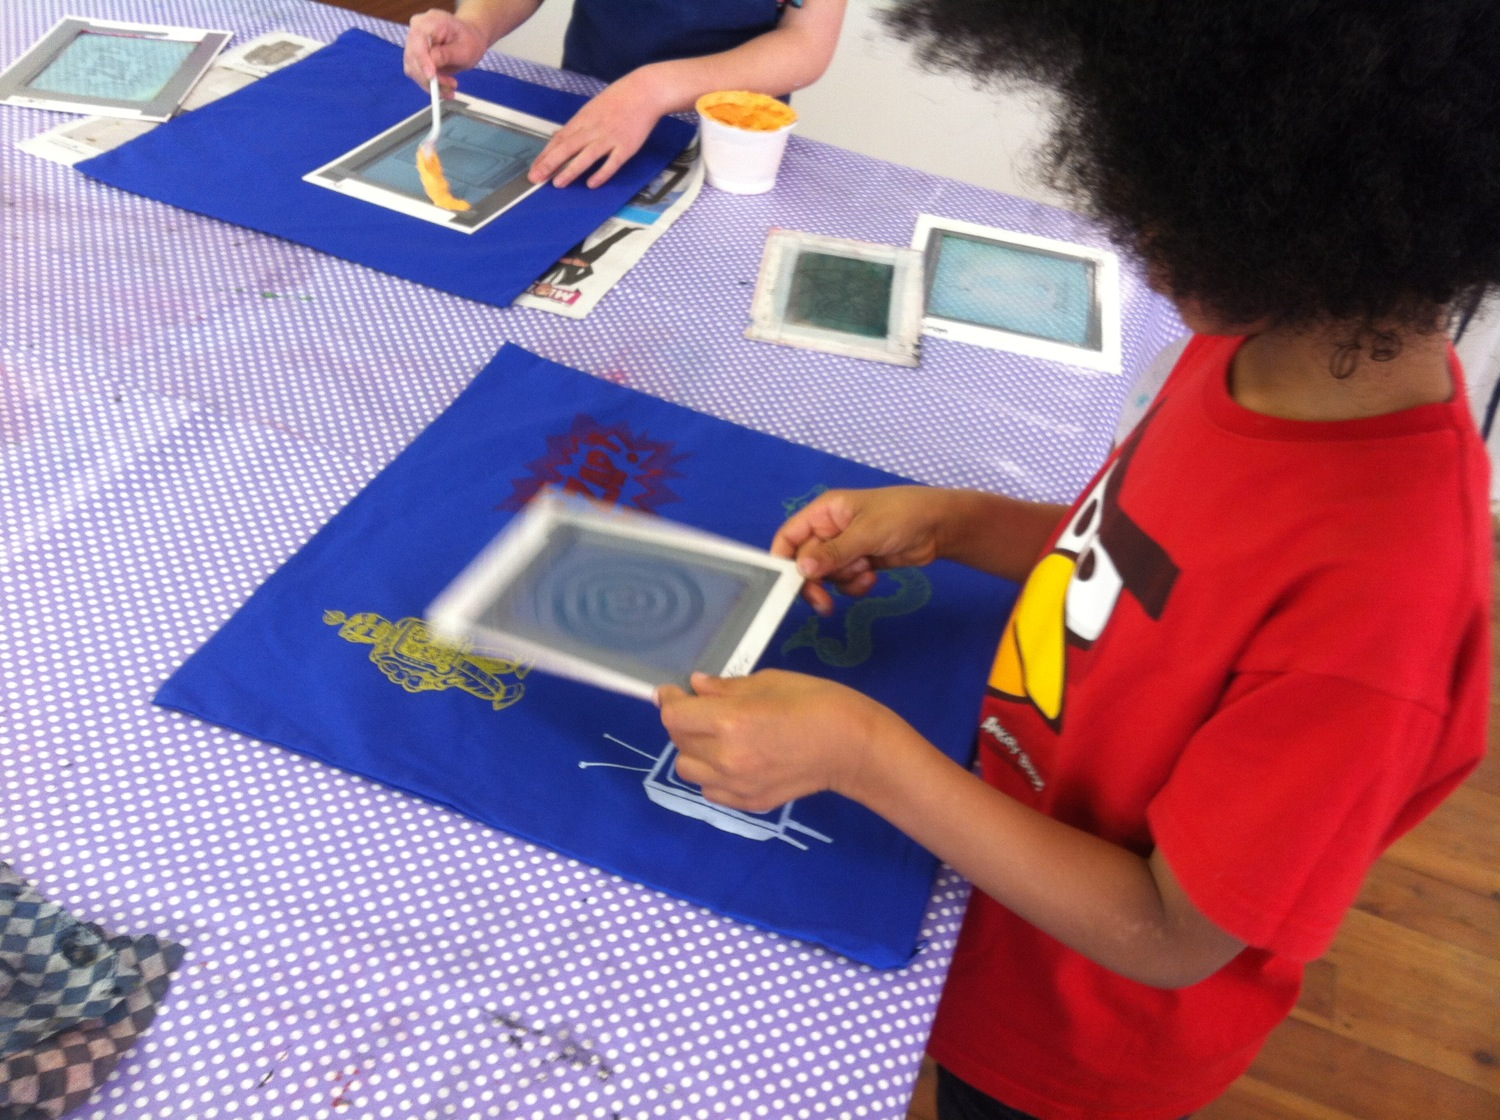 children printing cushions with thermofax screens - Printing With Children